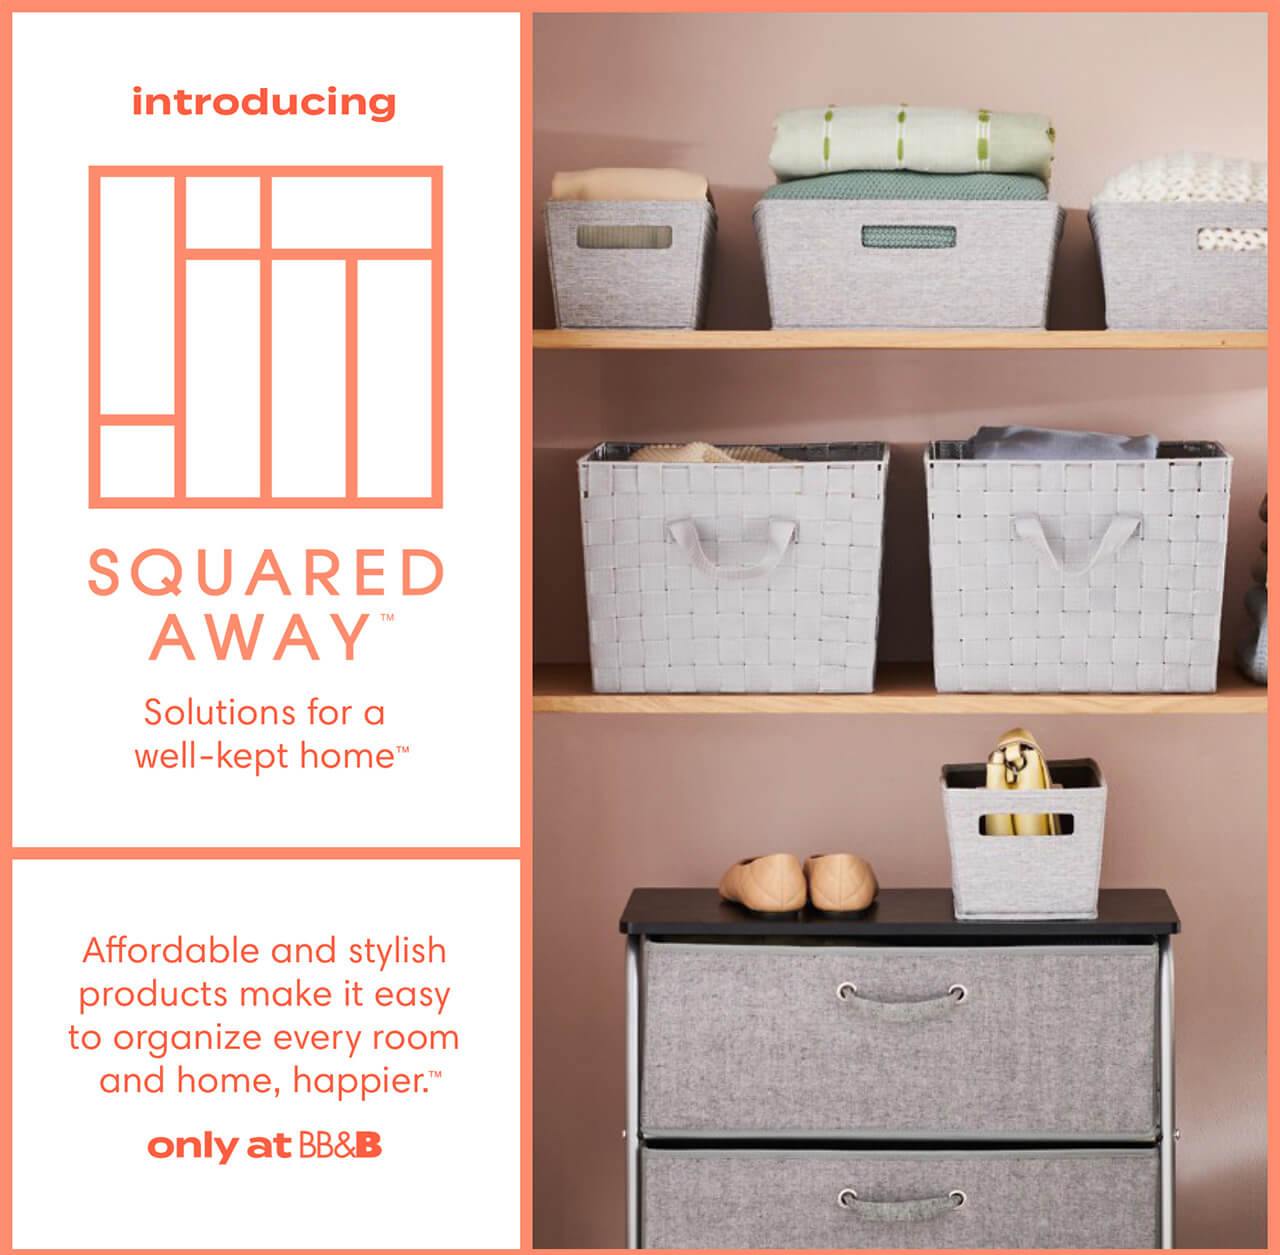 Introducing SQUARED AWAY™ Solutions for a well-kept home™ Affordable and stylish products make it easy to organize every room and home, happier™ only at BB&B